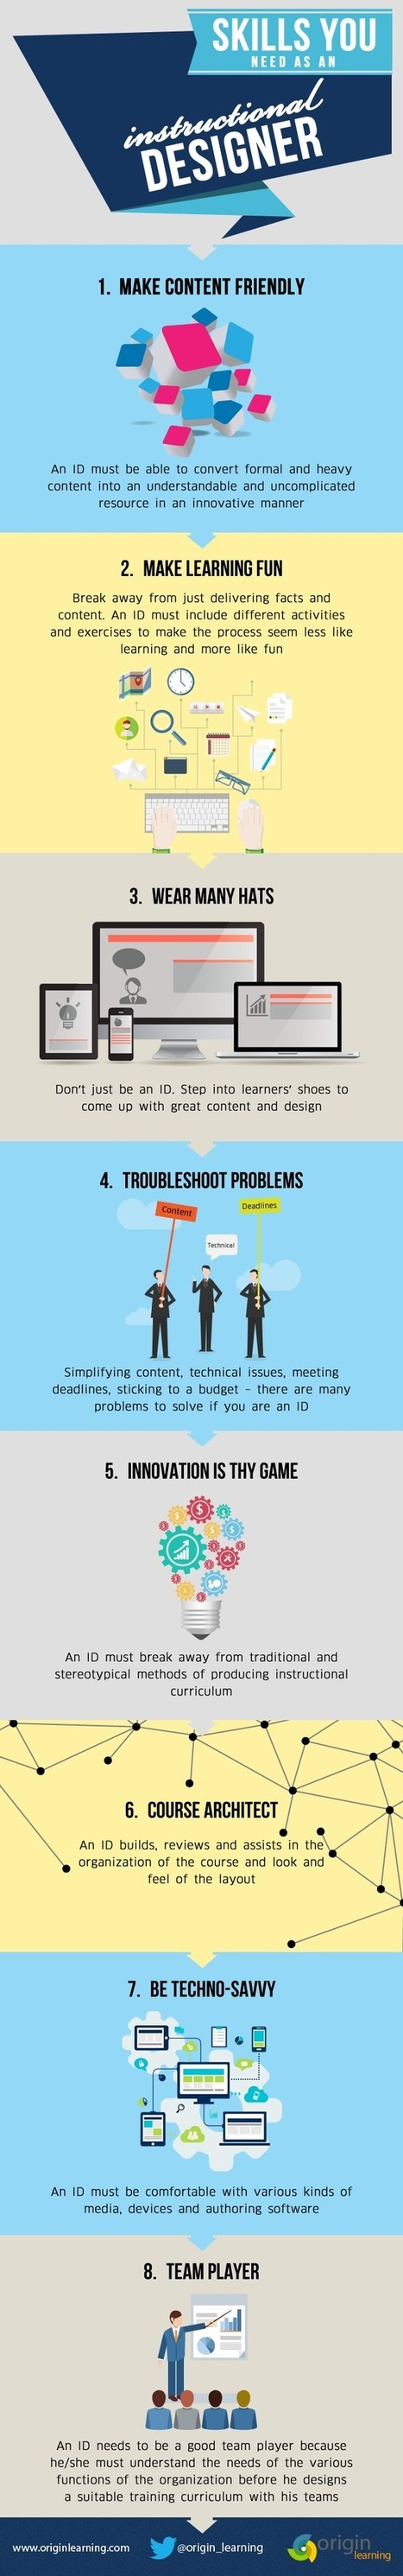 Top Instructional Designer's Skills Infographic - e-Learning Infographics | ventures of e-learning instruction | Scoop.it